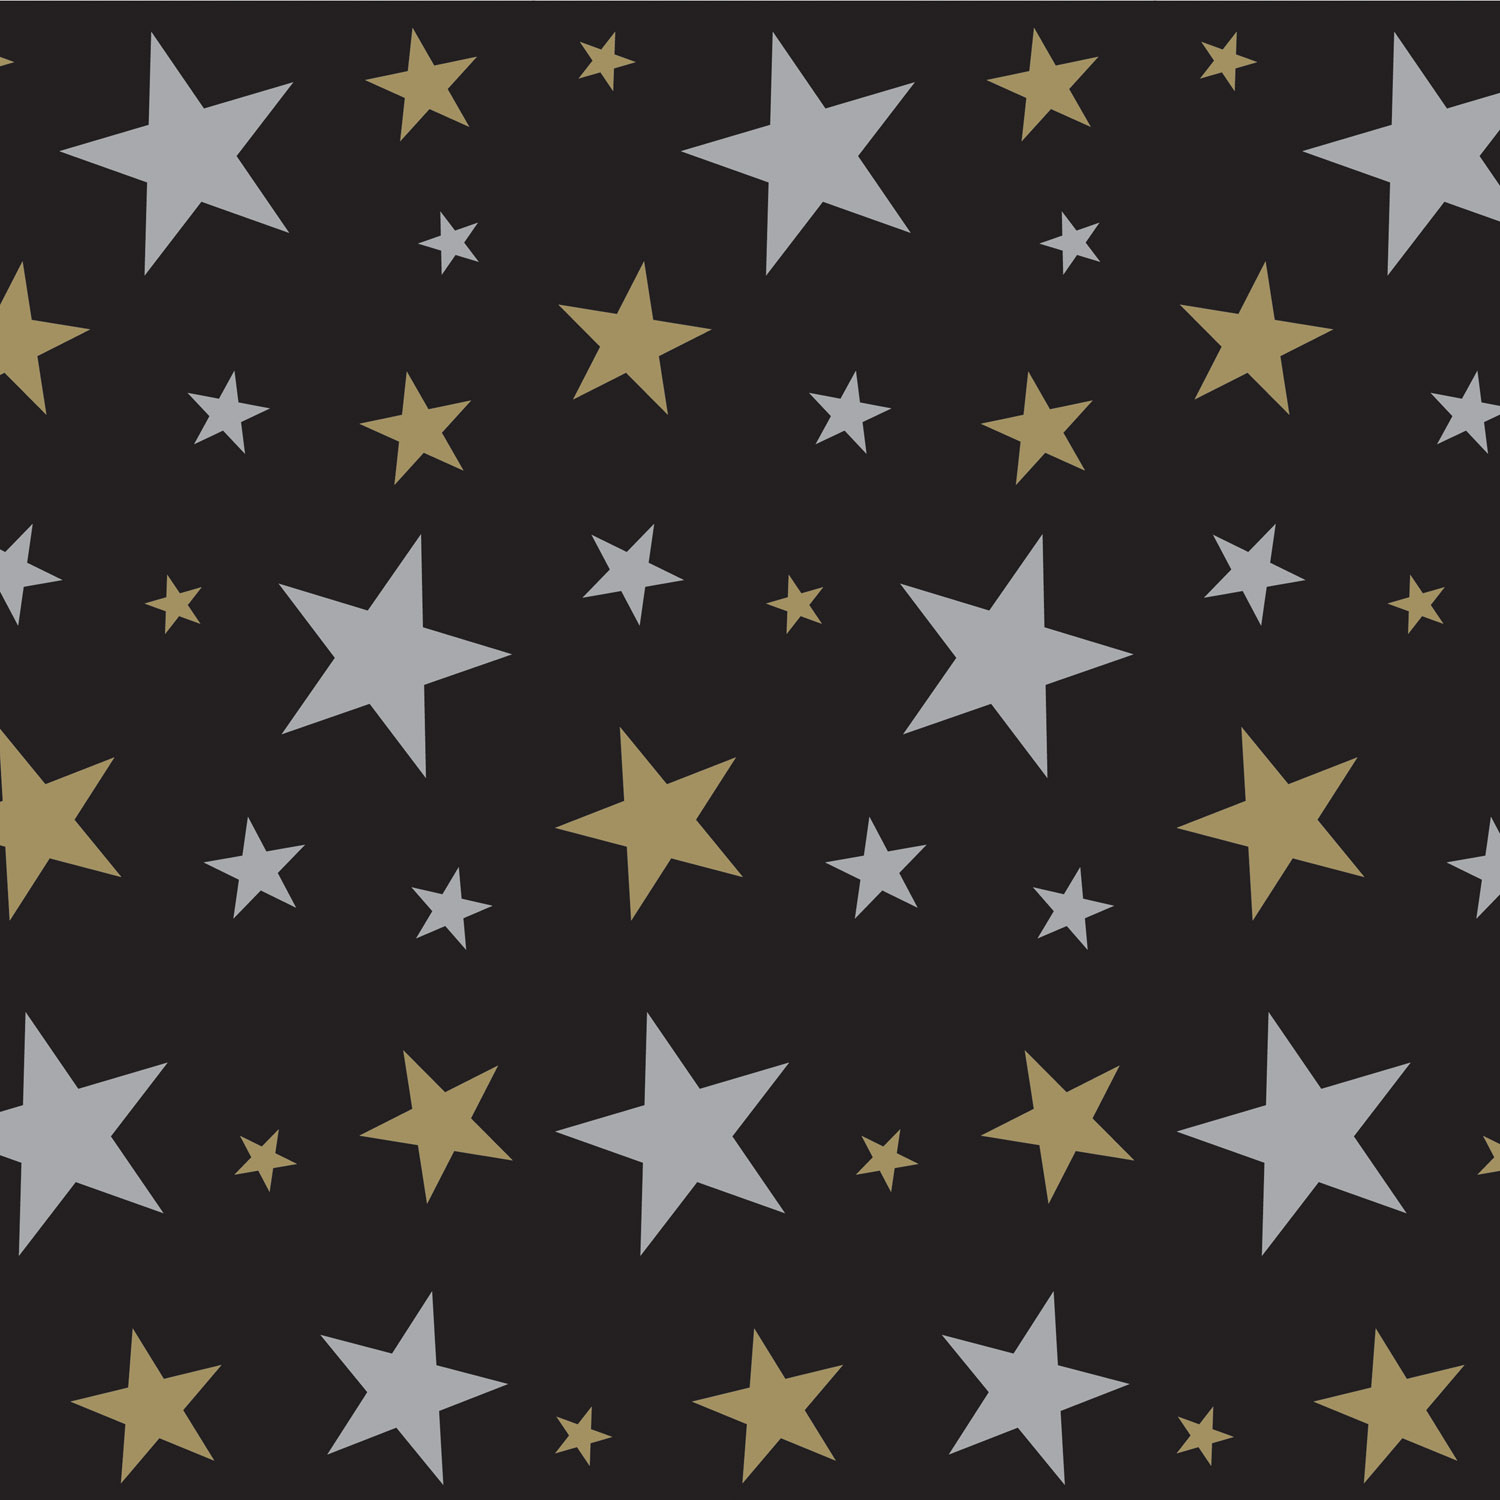 Star Backdrop (Pack of 6) Star, backdrop, photo, red carpet, hollywood, new years eve, decoration, wholesale, gold, silver, black, inexpensive, bulk